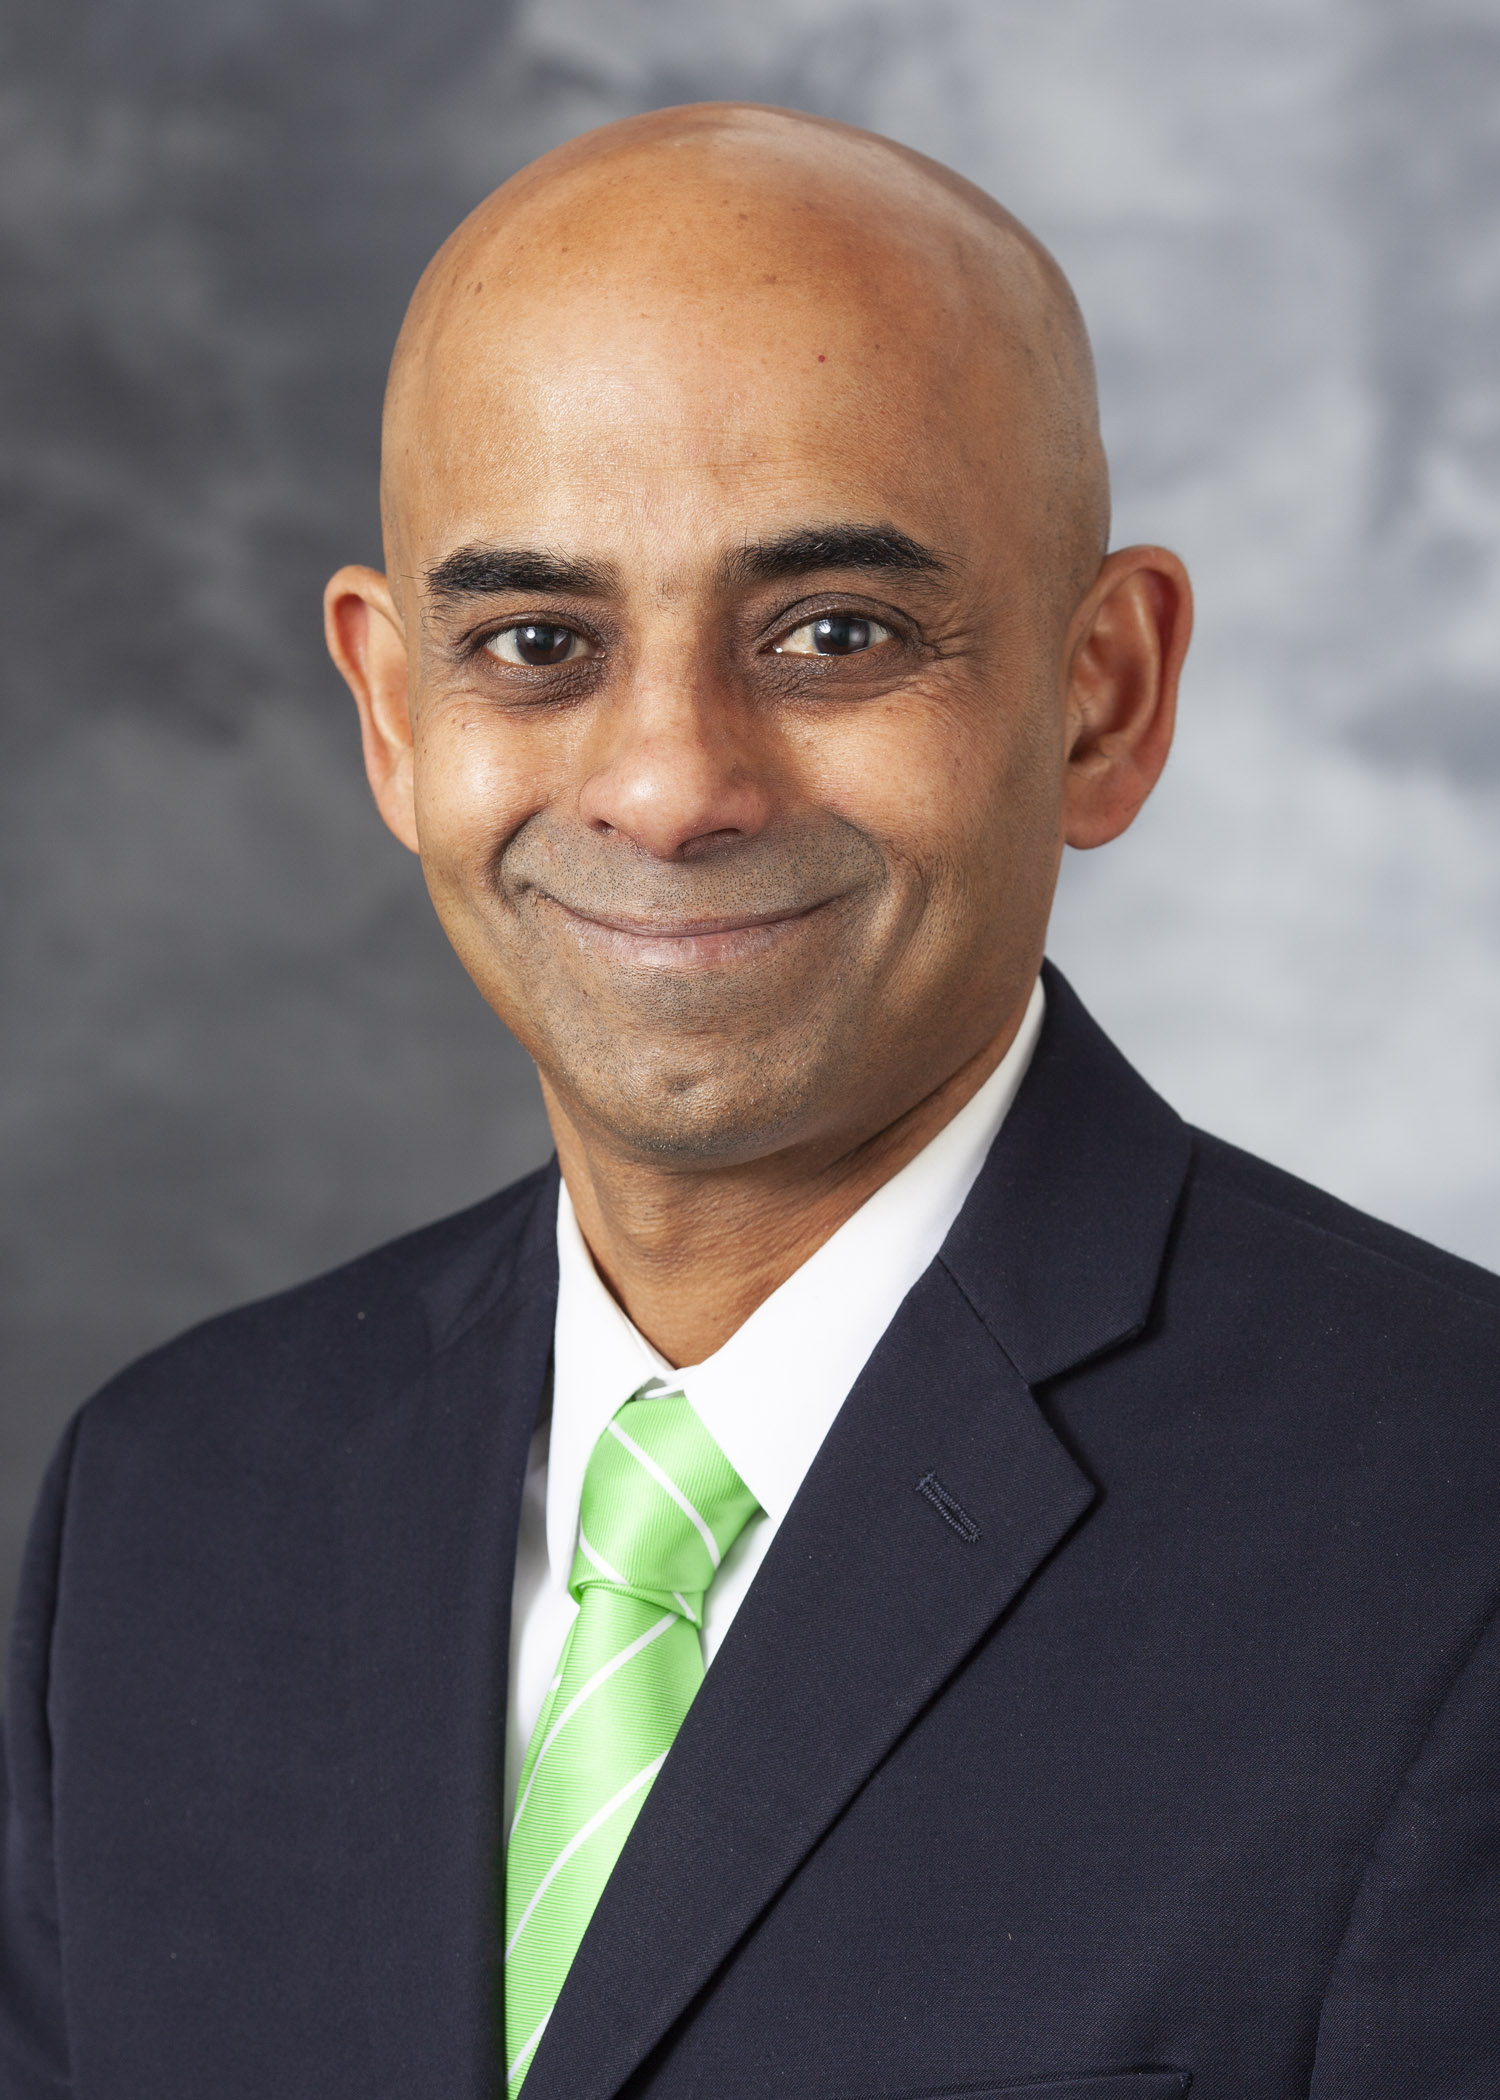 Chero Goswami, System Vice President/Chief Information Officer